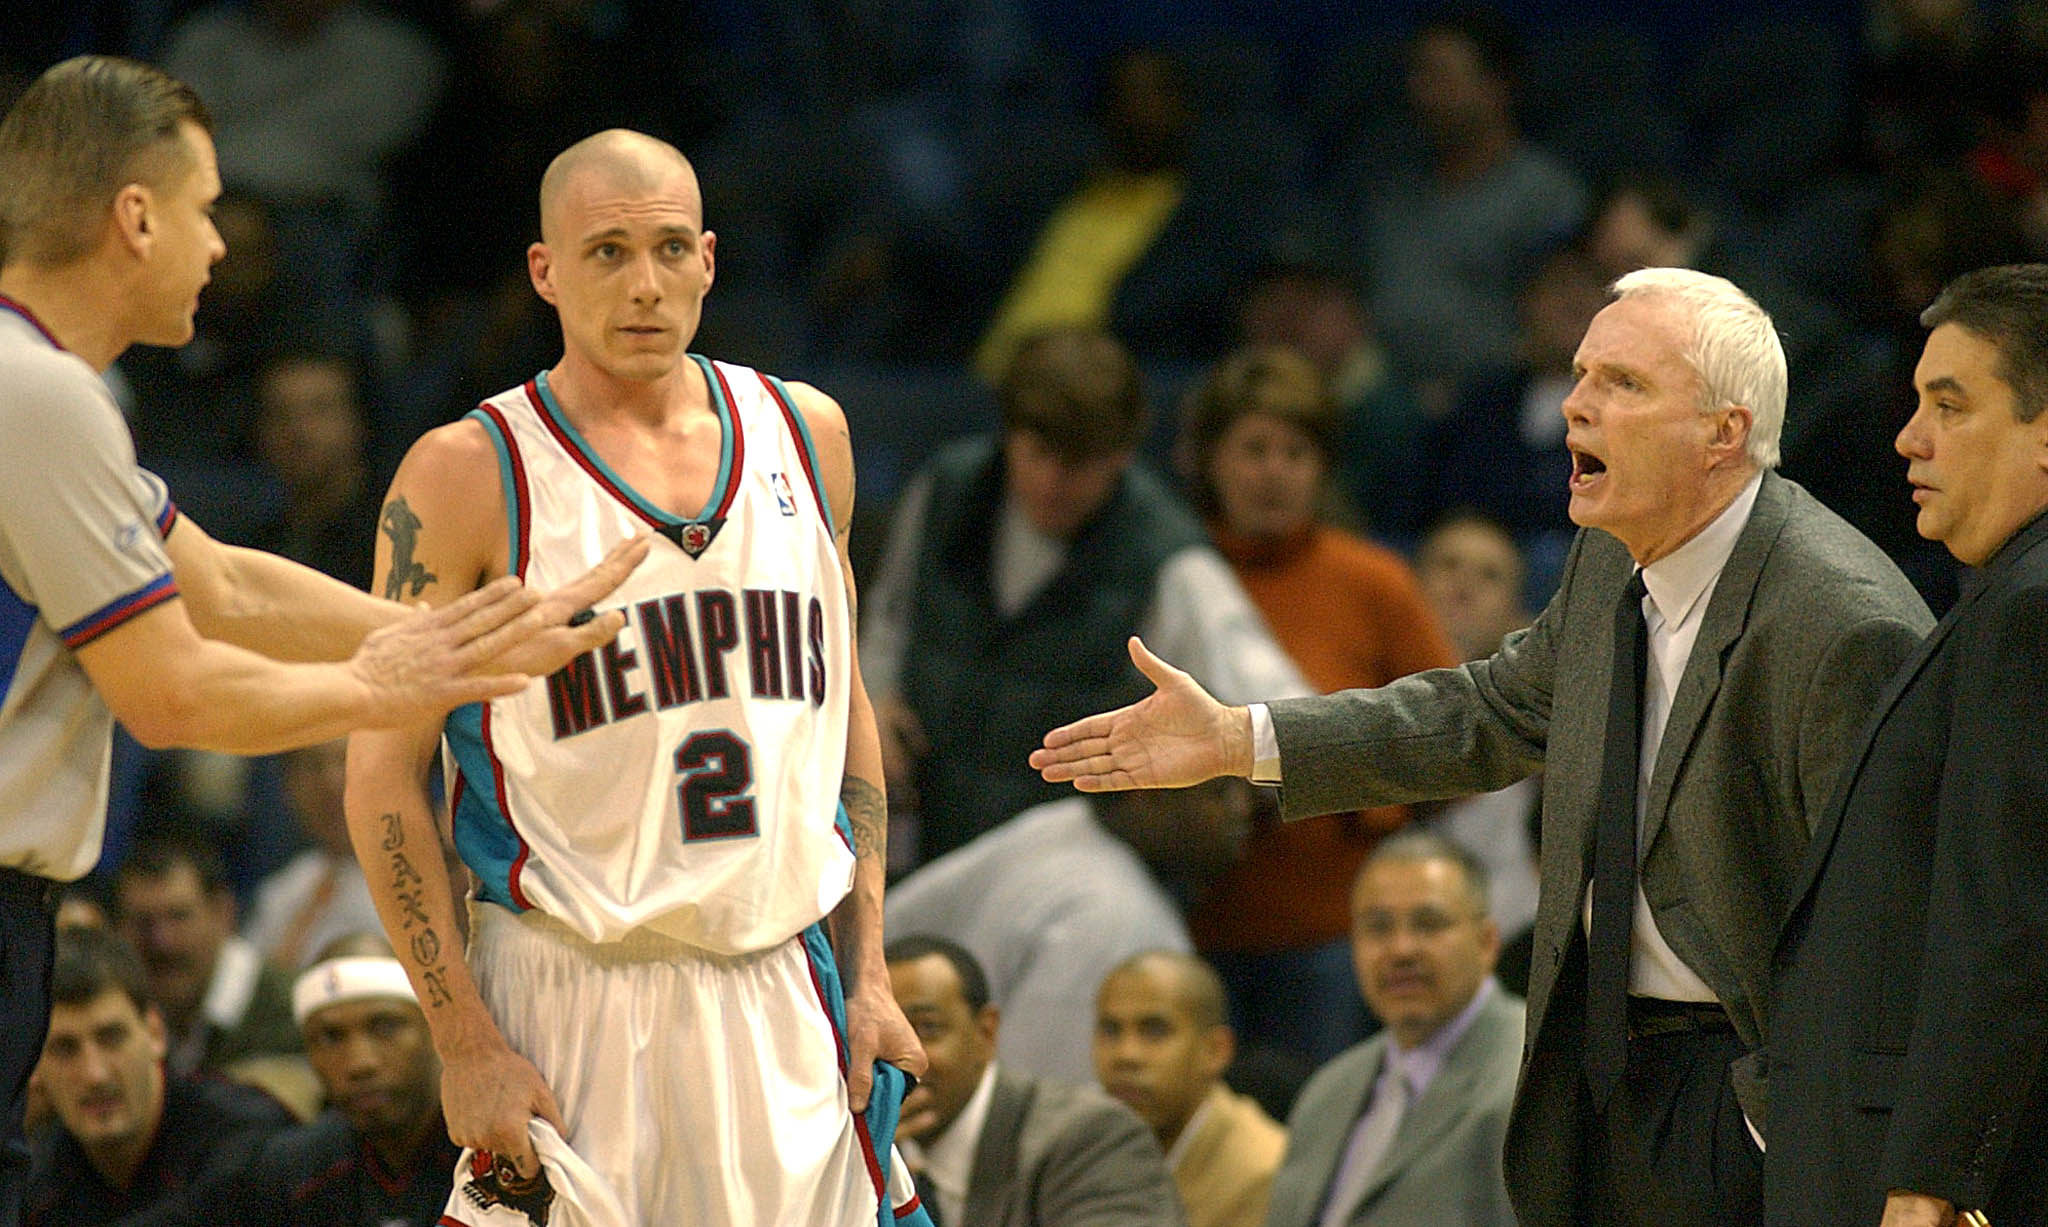 Memphis Grizzlies' head coach Hubie Brown (R) argues his first technical with official Steve Javie (L) during first quarter NBA action 18 February 2003 at the Pyramid in Memphis, TN. Brown was given a second technical and ejected from the game. AFP PHOTO/Matthew CRAIG (Photo by MATTHEW CRAIG / AFP)